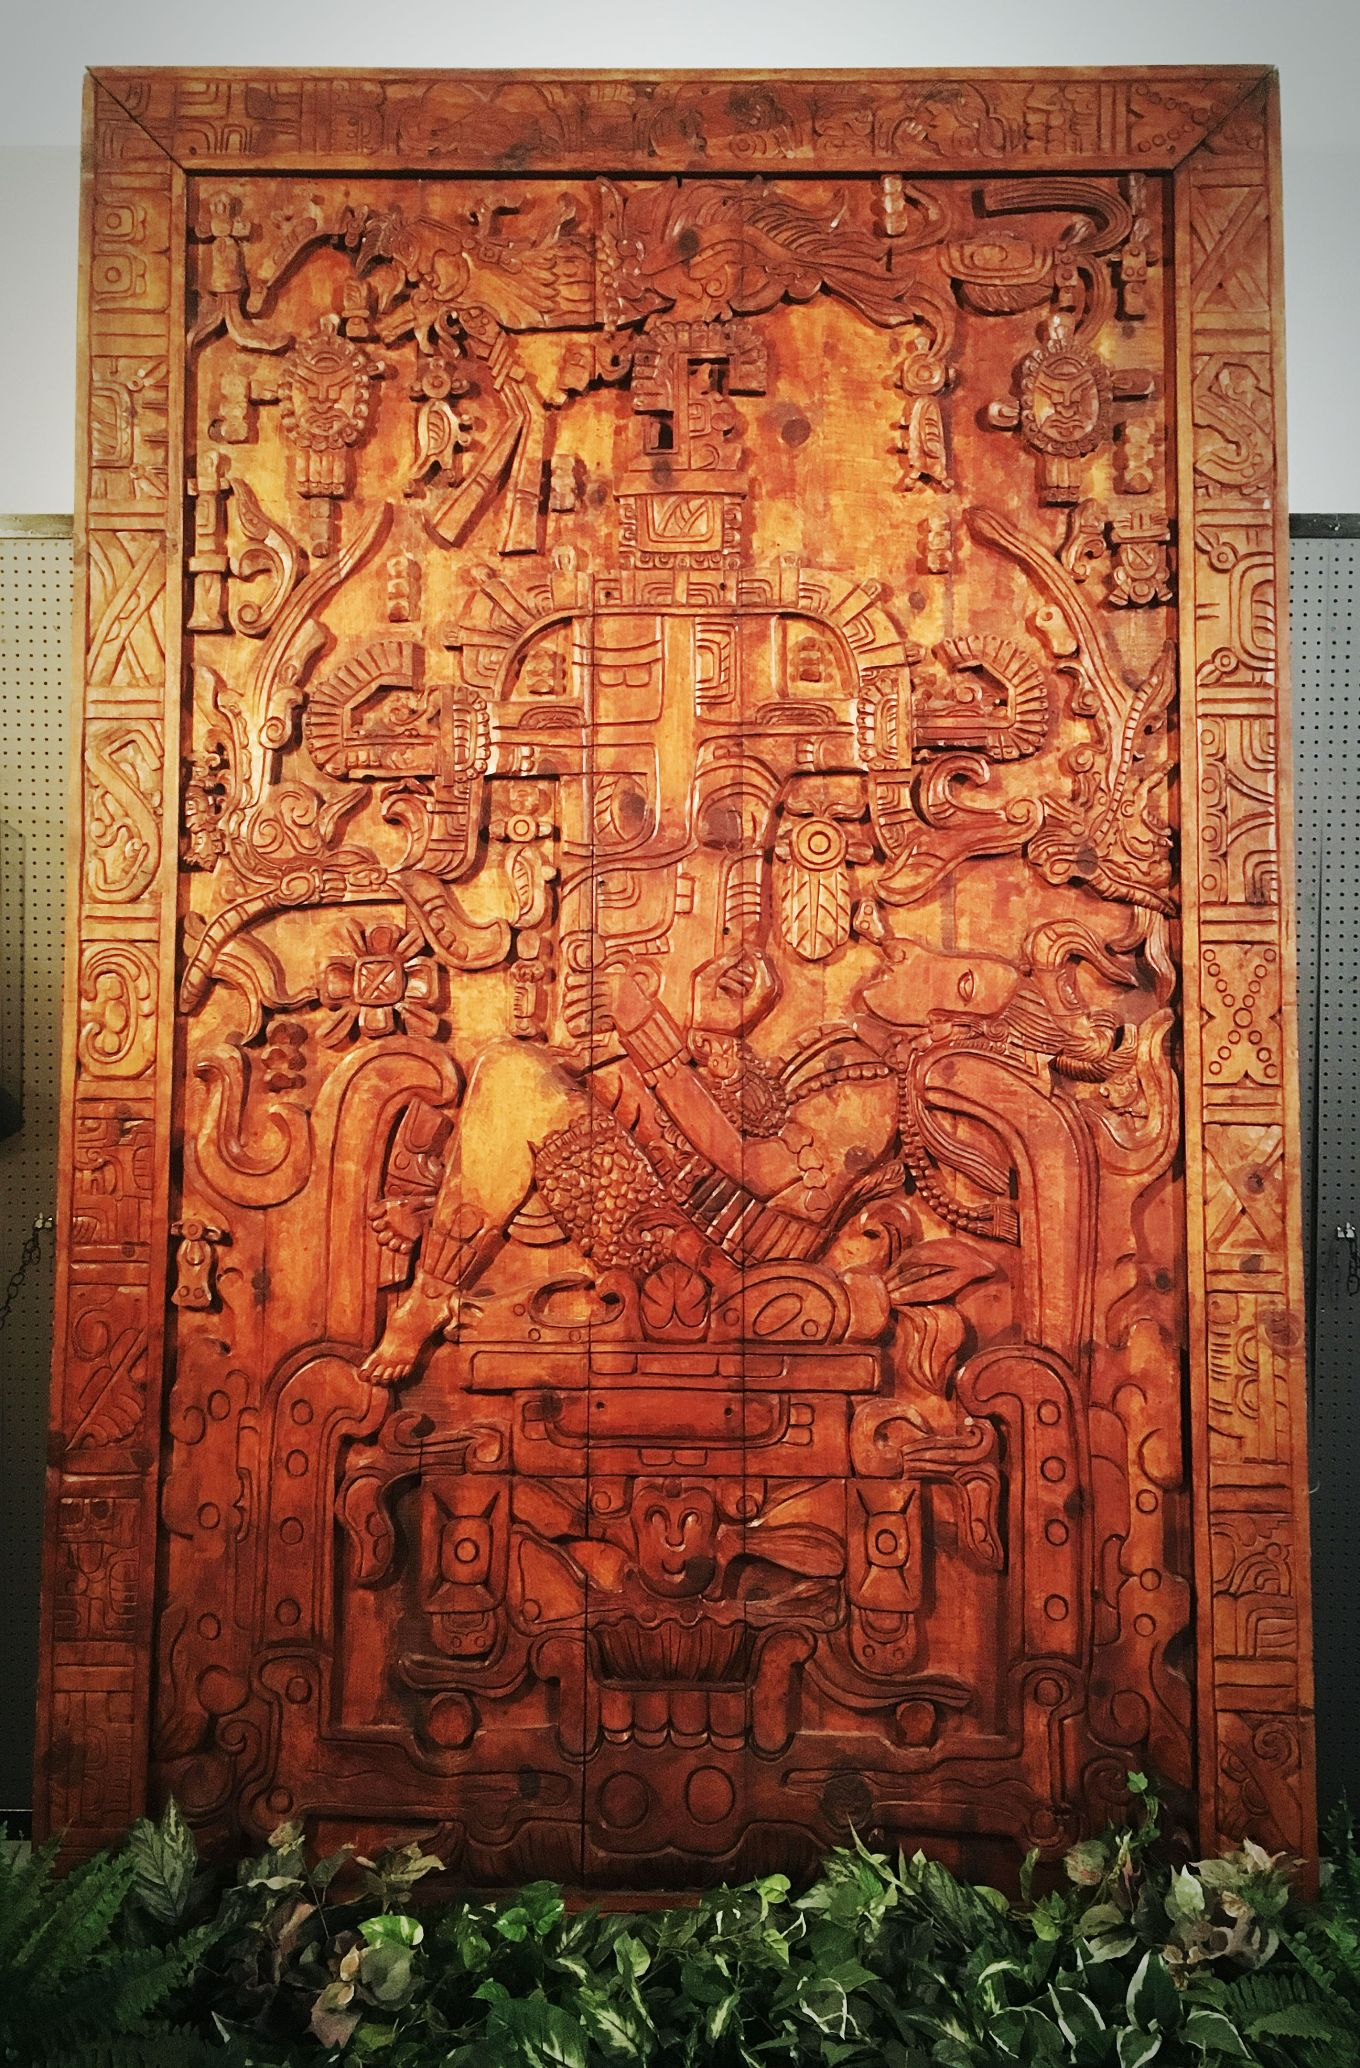 A wood carving replica of the ancient Mayan carving purported to be an ancient astronaut at the International UFO Museum and Research Center